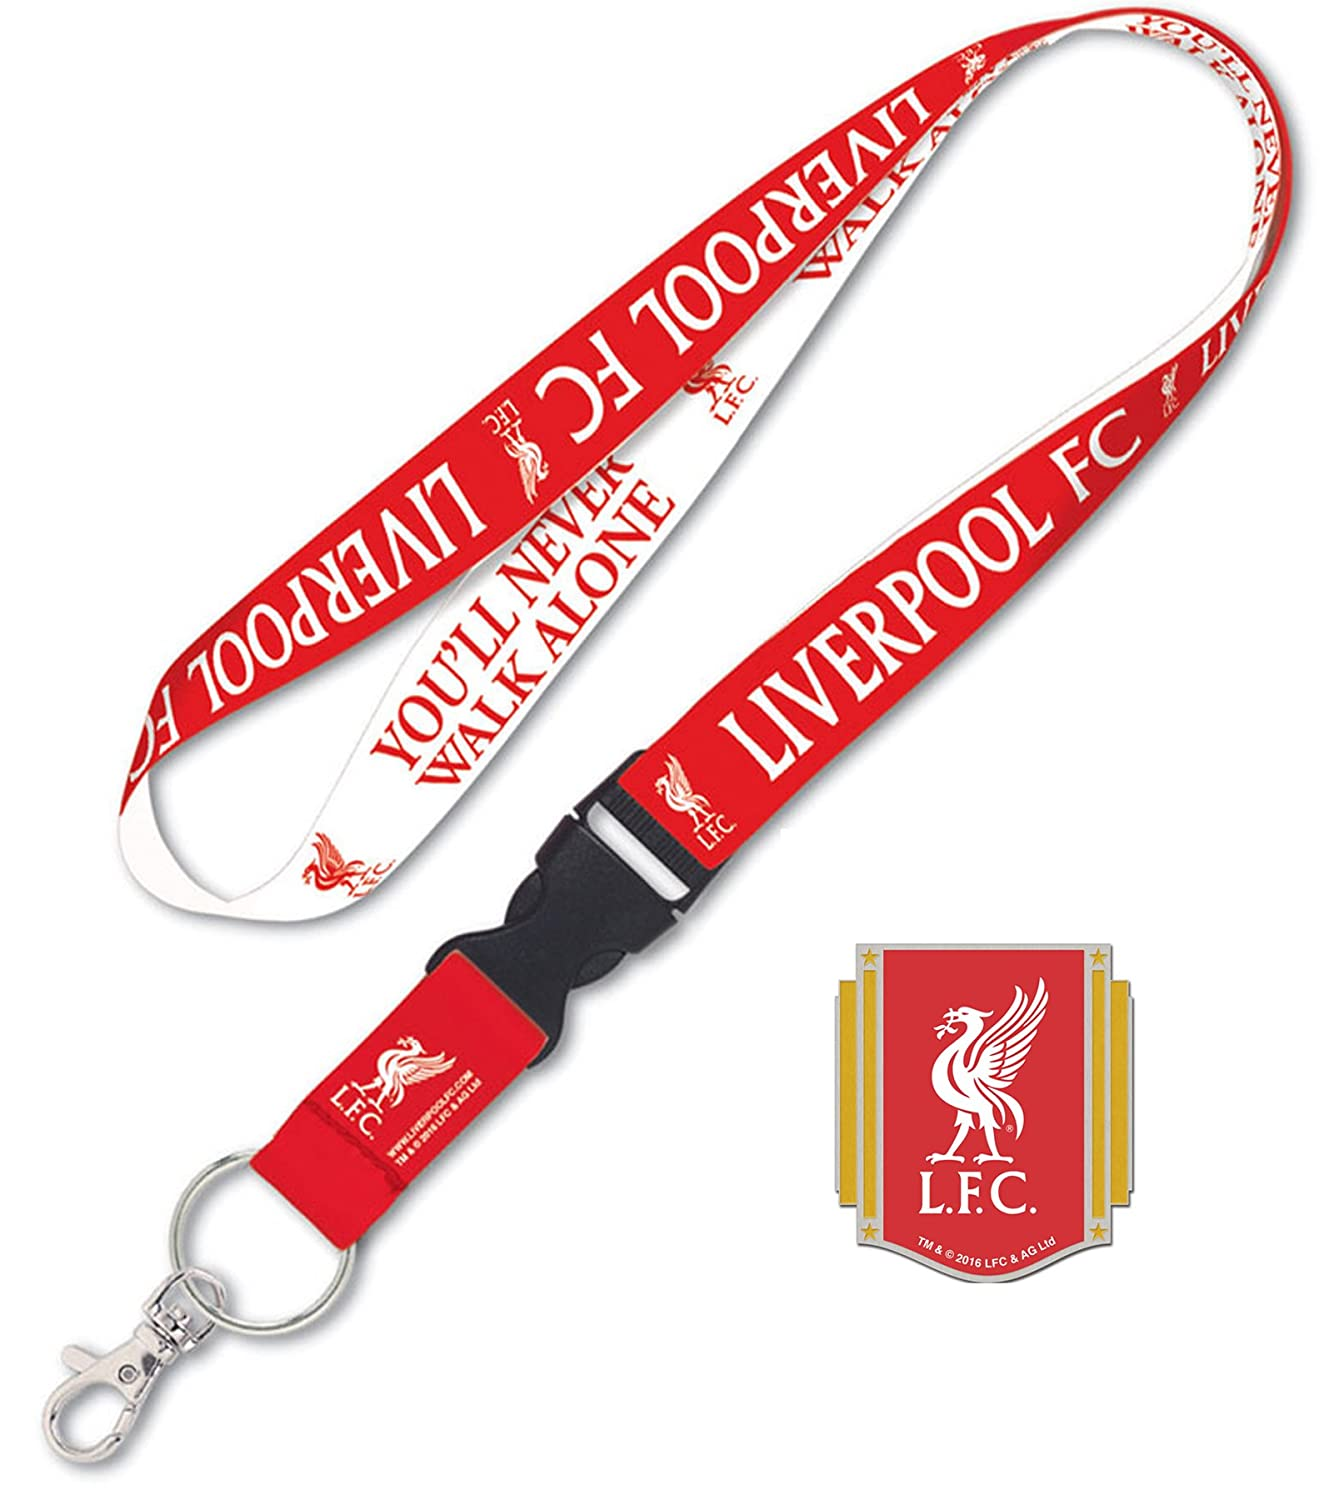 WinCraft Liverpool Football Club Lanyard Gift Set 1 Premium Lanyard and 1 Collectible Lapel Pin